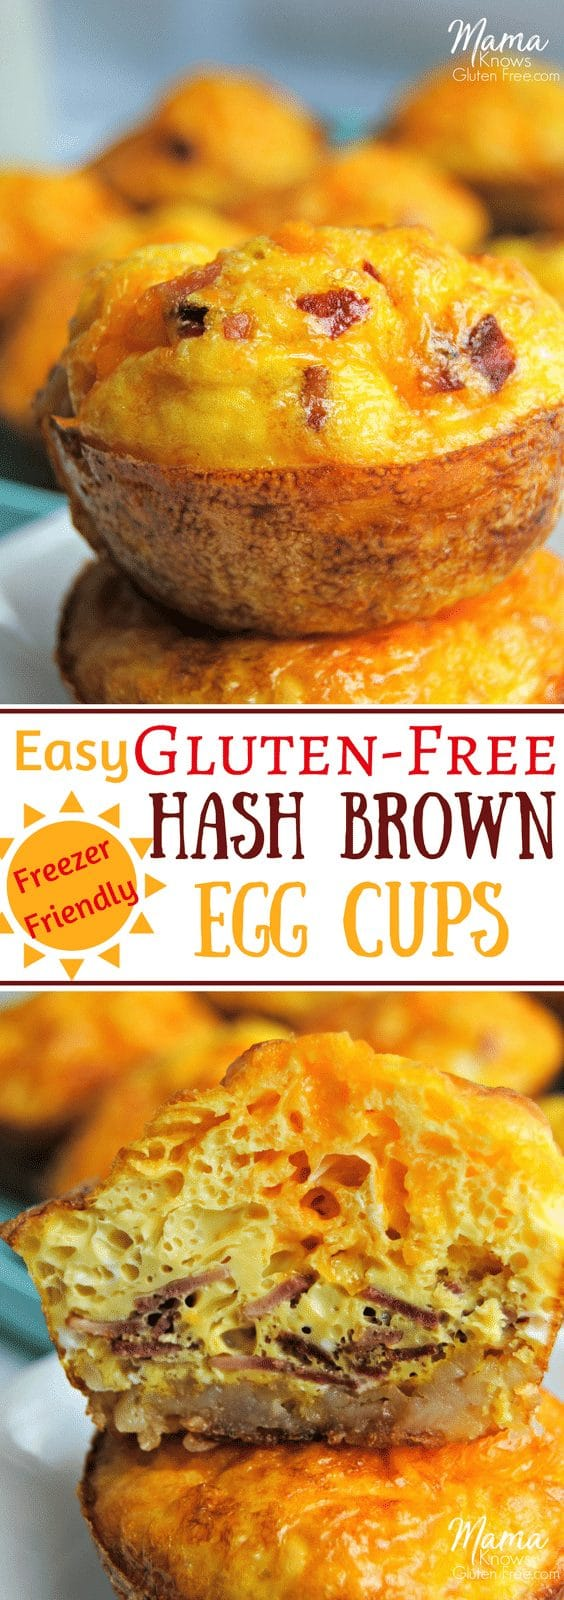 gluten-free hash brown egg cups Pinterest pin